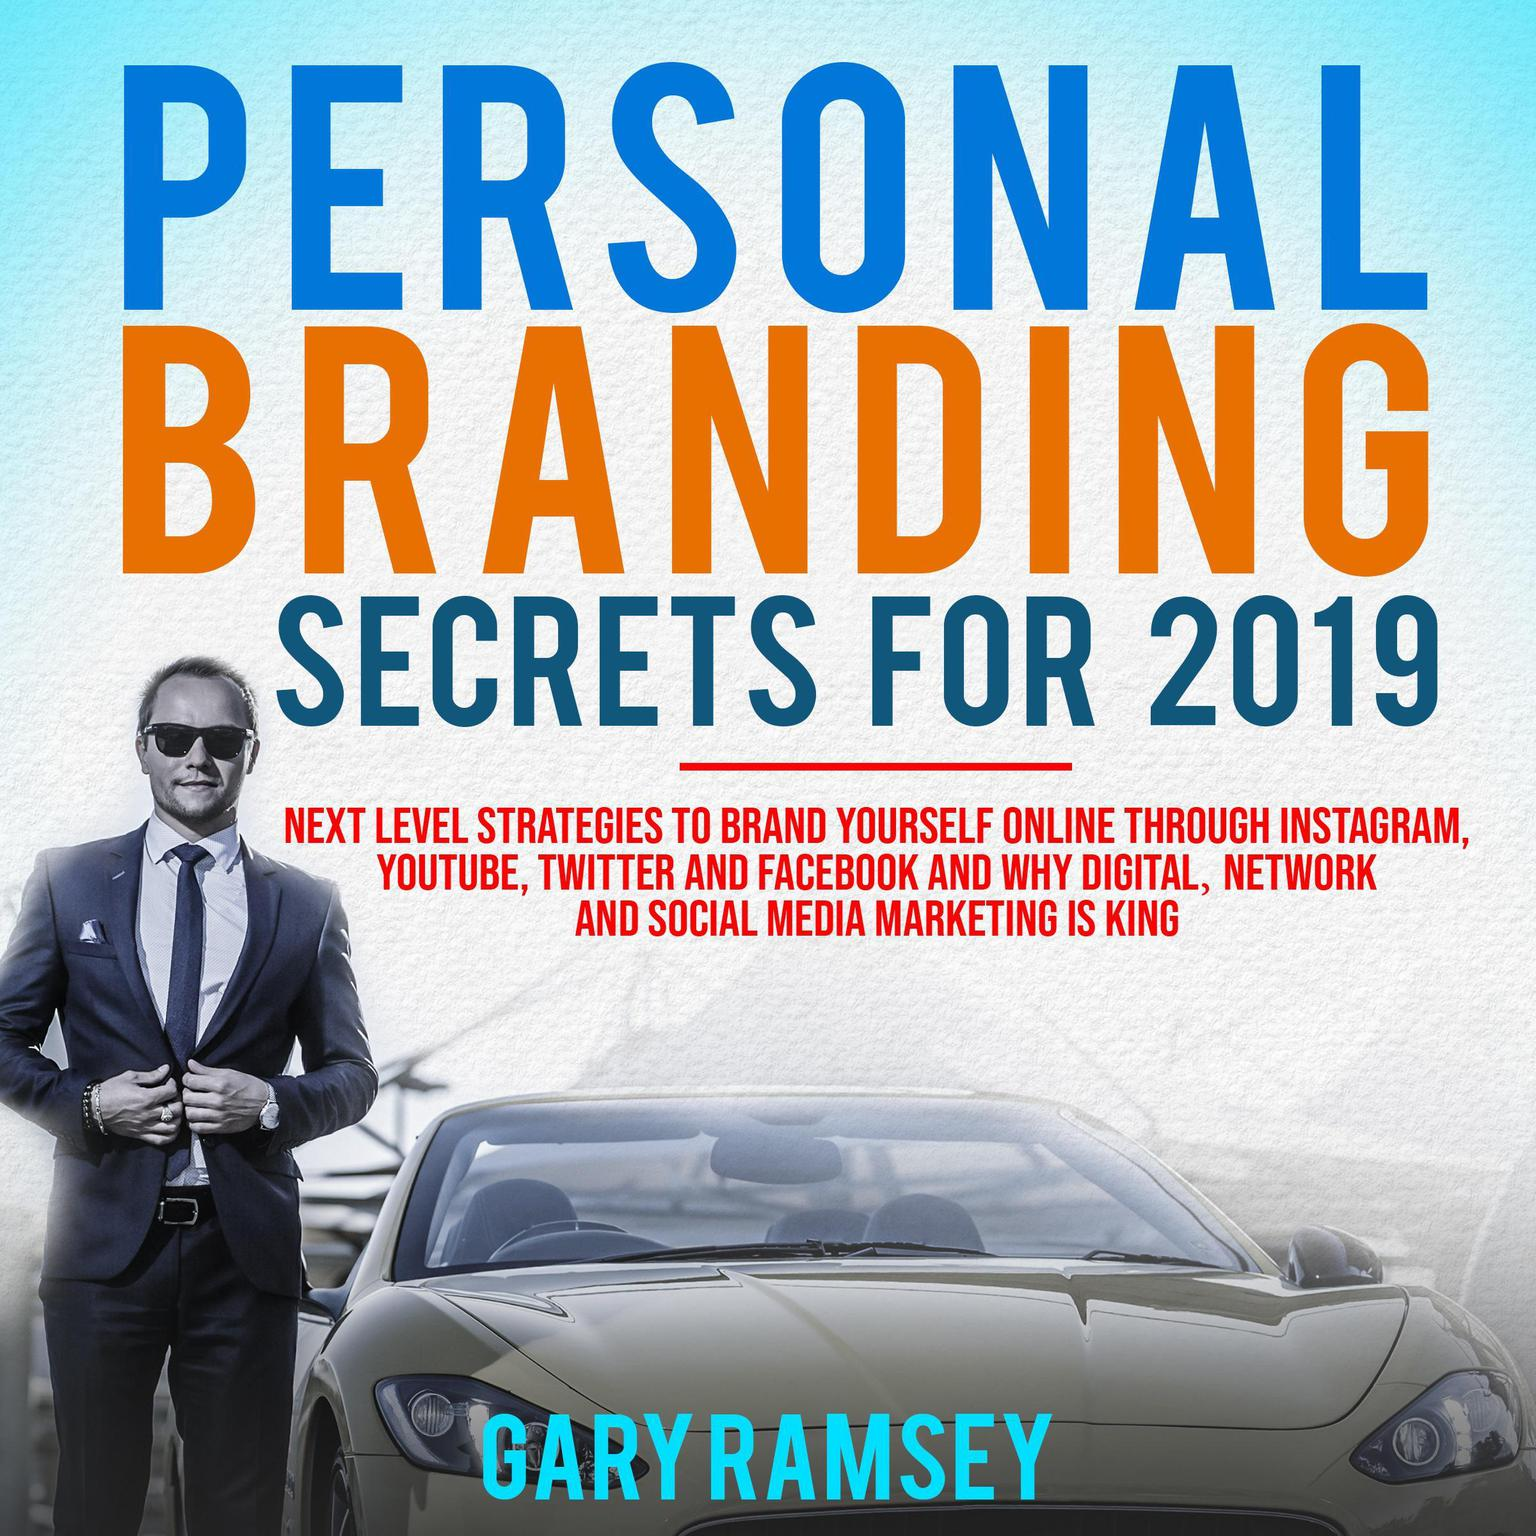 Printable Personal Branding Secrets For 2019: Next Level Strategies to Brand Yourself Online through Instagram, YouTube, Twitter, and Facebook And Why Digital, Network, and Social Media Marketing is King Audiobook Cover Art